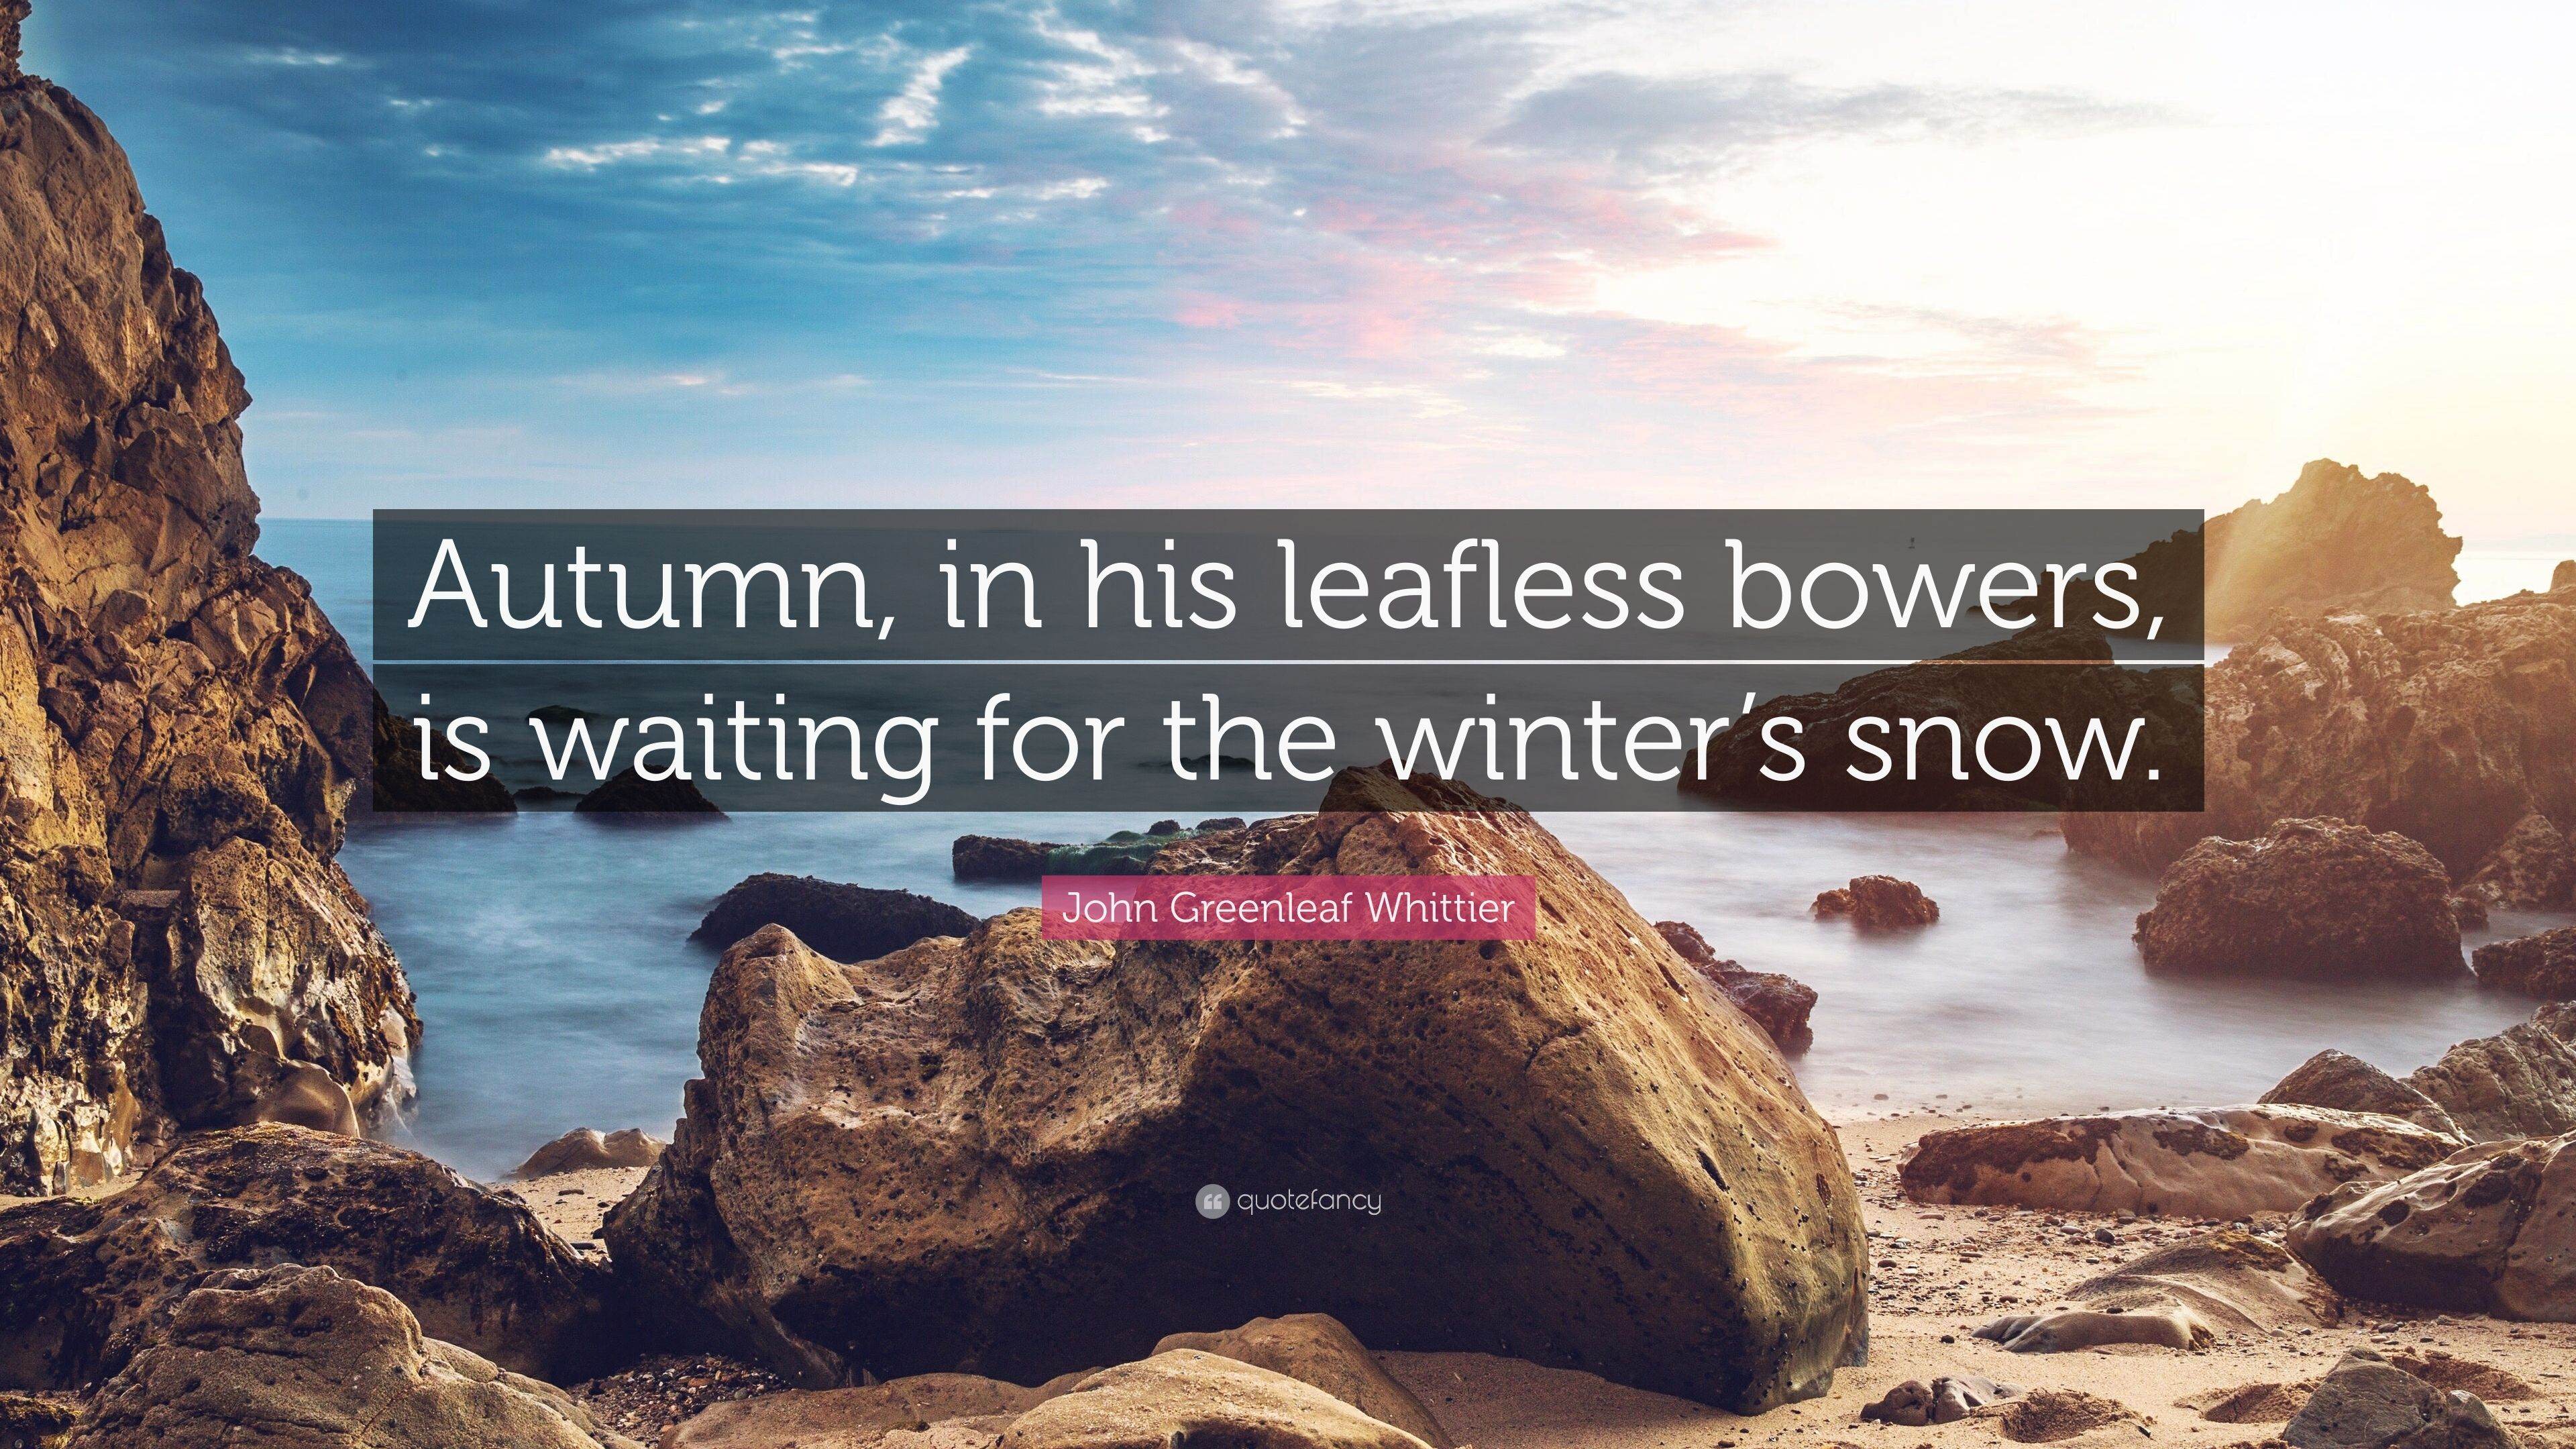 John Greenleaf Whittier Quote: U201cAutumn, In His Leafless Bowers, Is Waiting  For